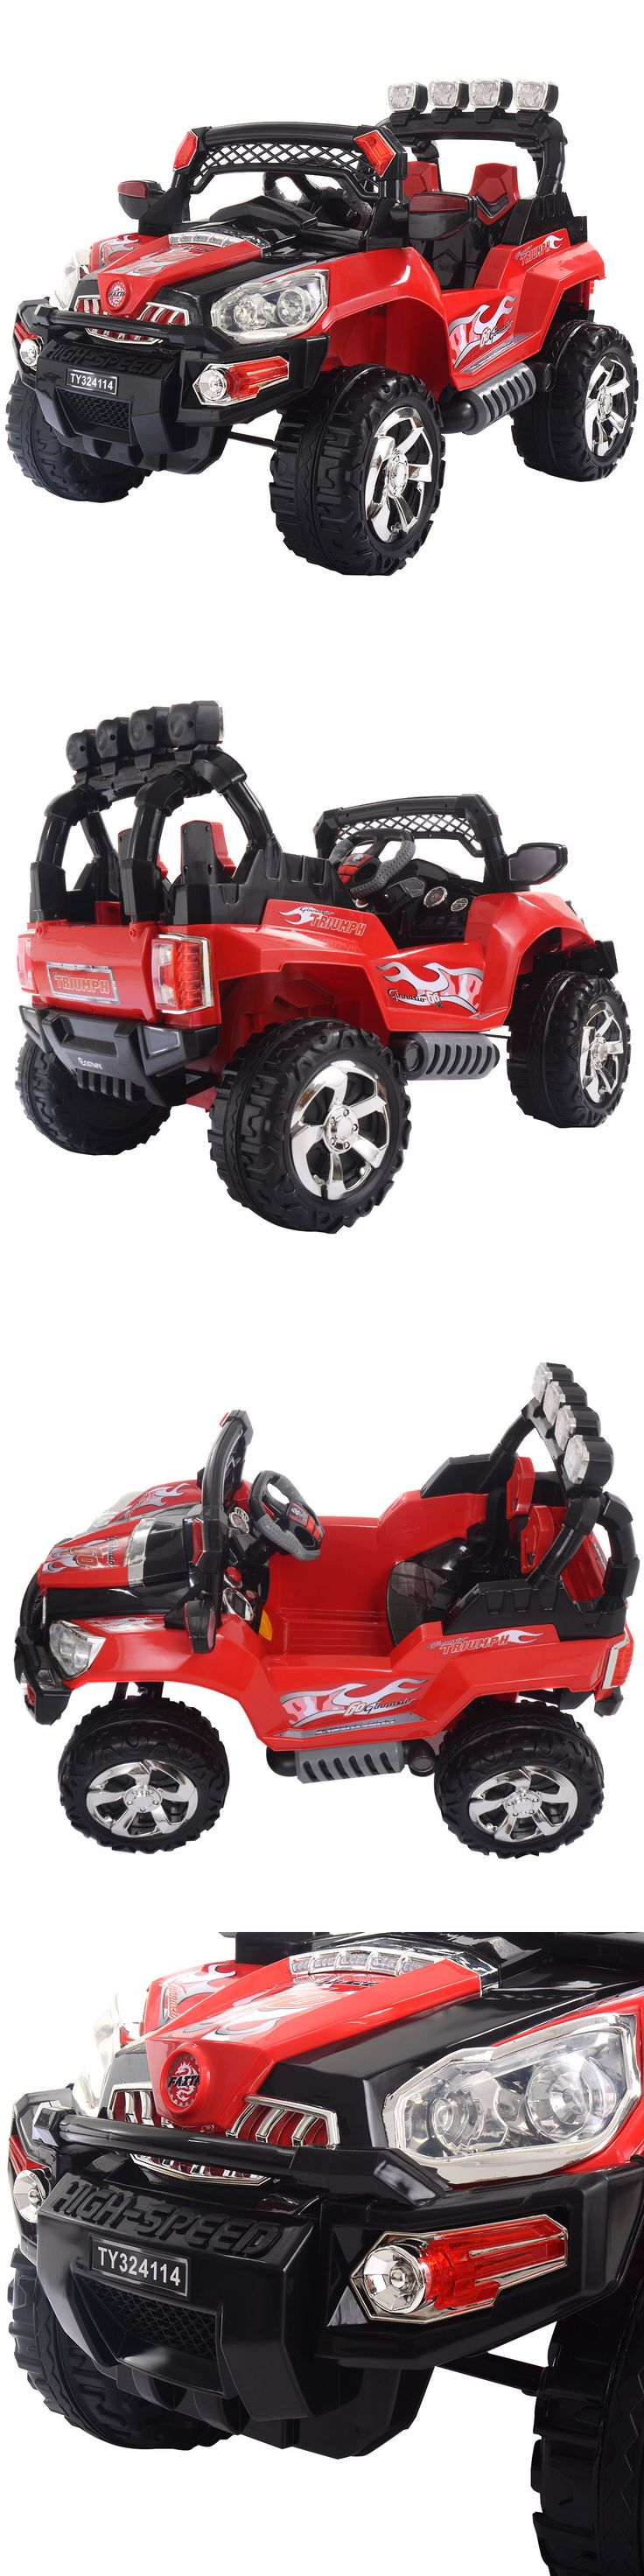 Ride On Toys and Accessories 145944: 12V Kids Ride On Truck Car Suv Mp3 Rc Remote Control W Led Lights Music -> BUY IT NOW ONLY: $179.95 on eBay!